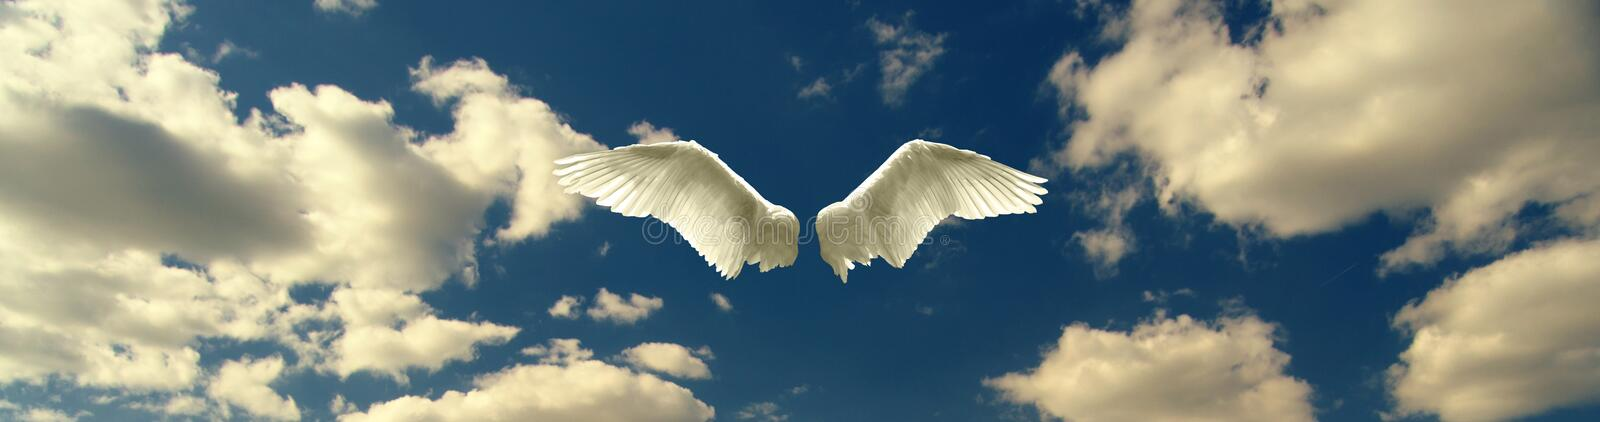 Angel wings against blue sky and white clouds on sunny day stock images